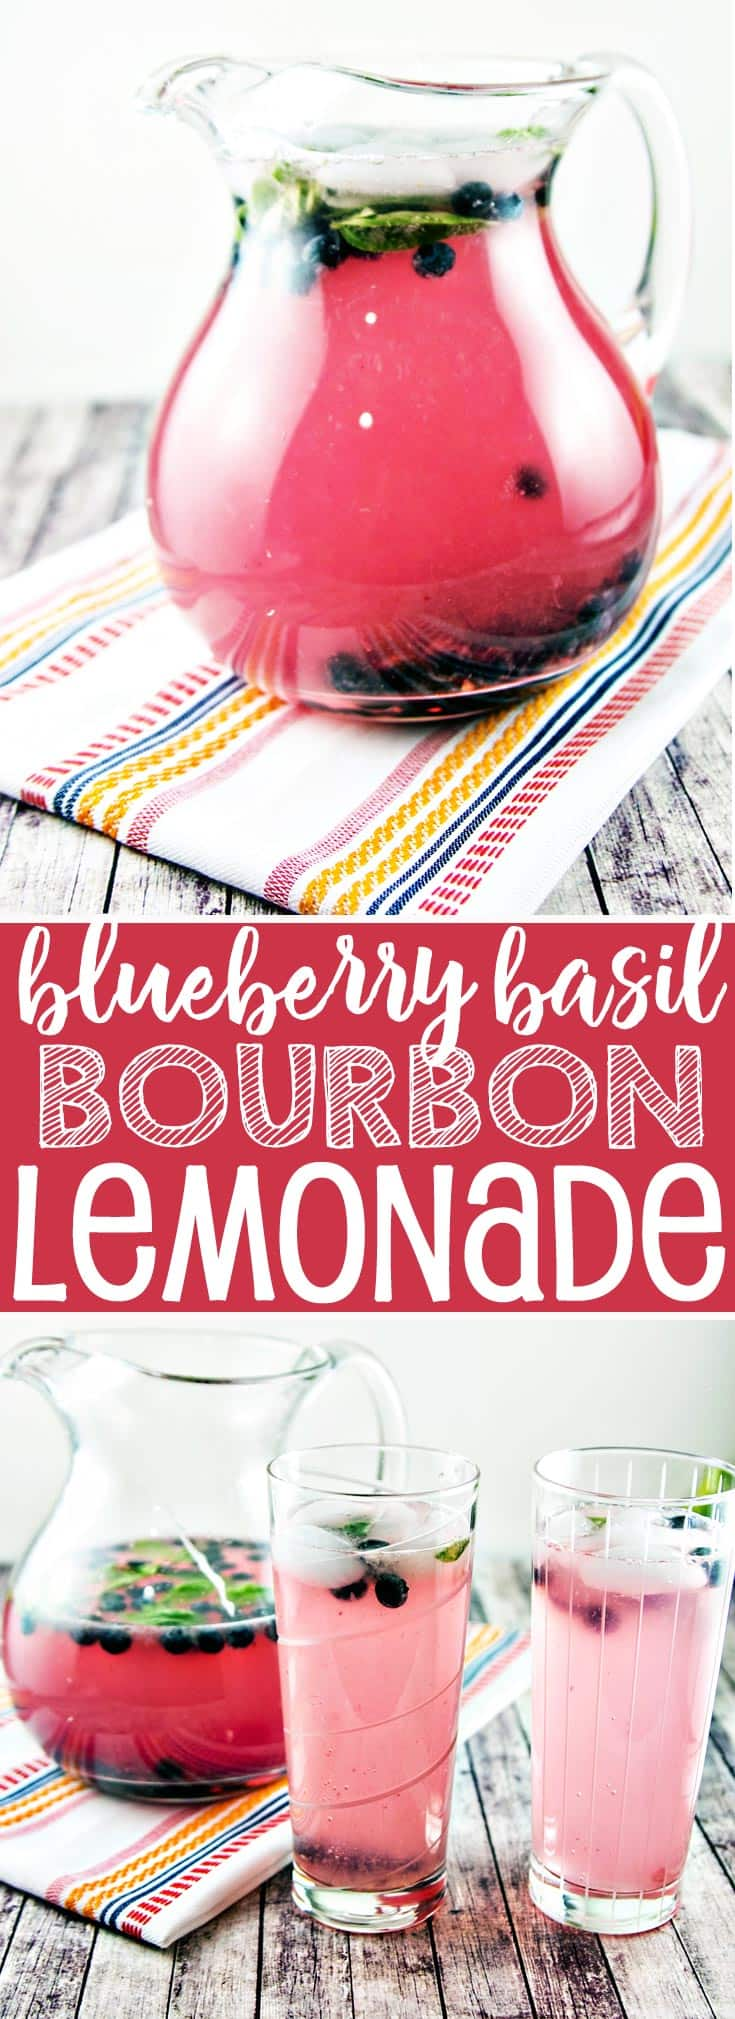 Blueberry Basil (Bourbon) Lemonade: Celebrate the best parts of summer with fresh squeezed blueberry basil lemonade - a generous splash of bourbon optional. {Bunsen Burner Bakery}